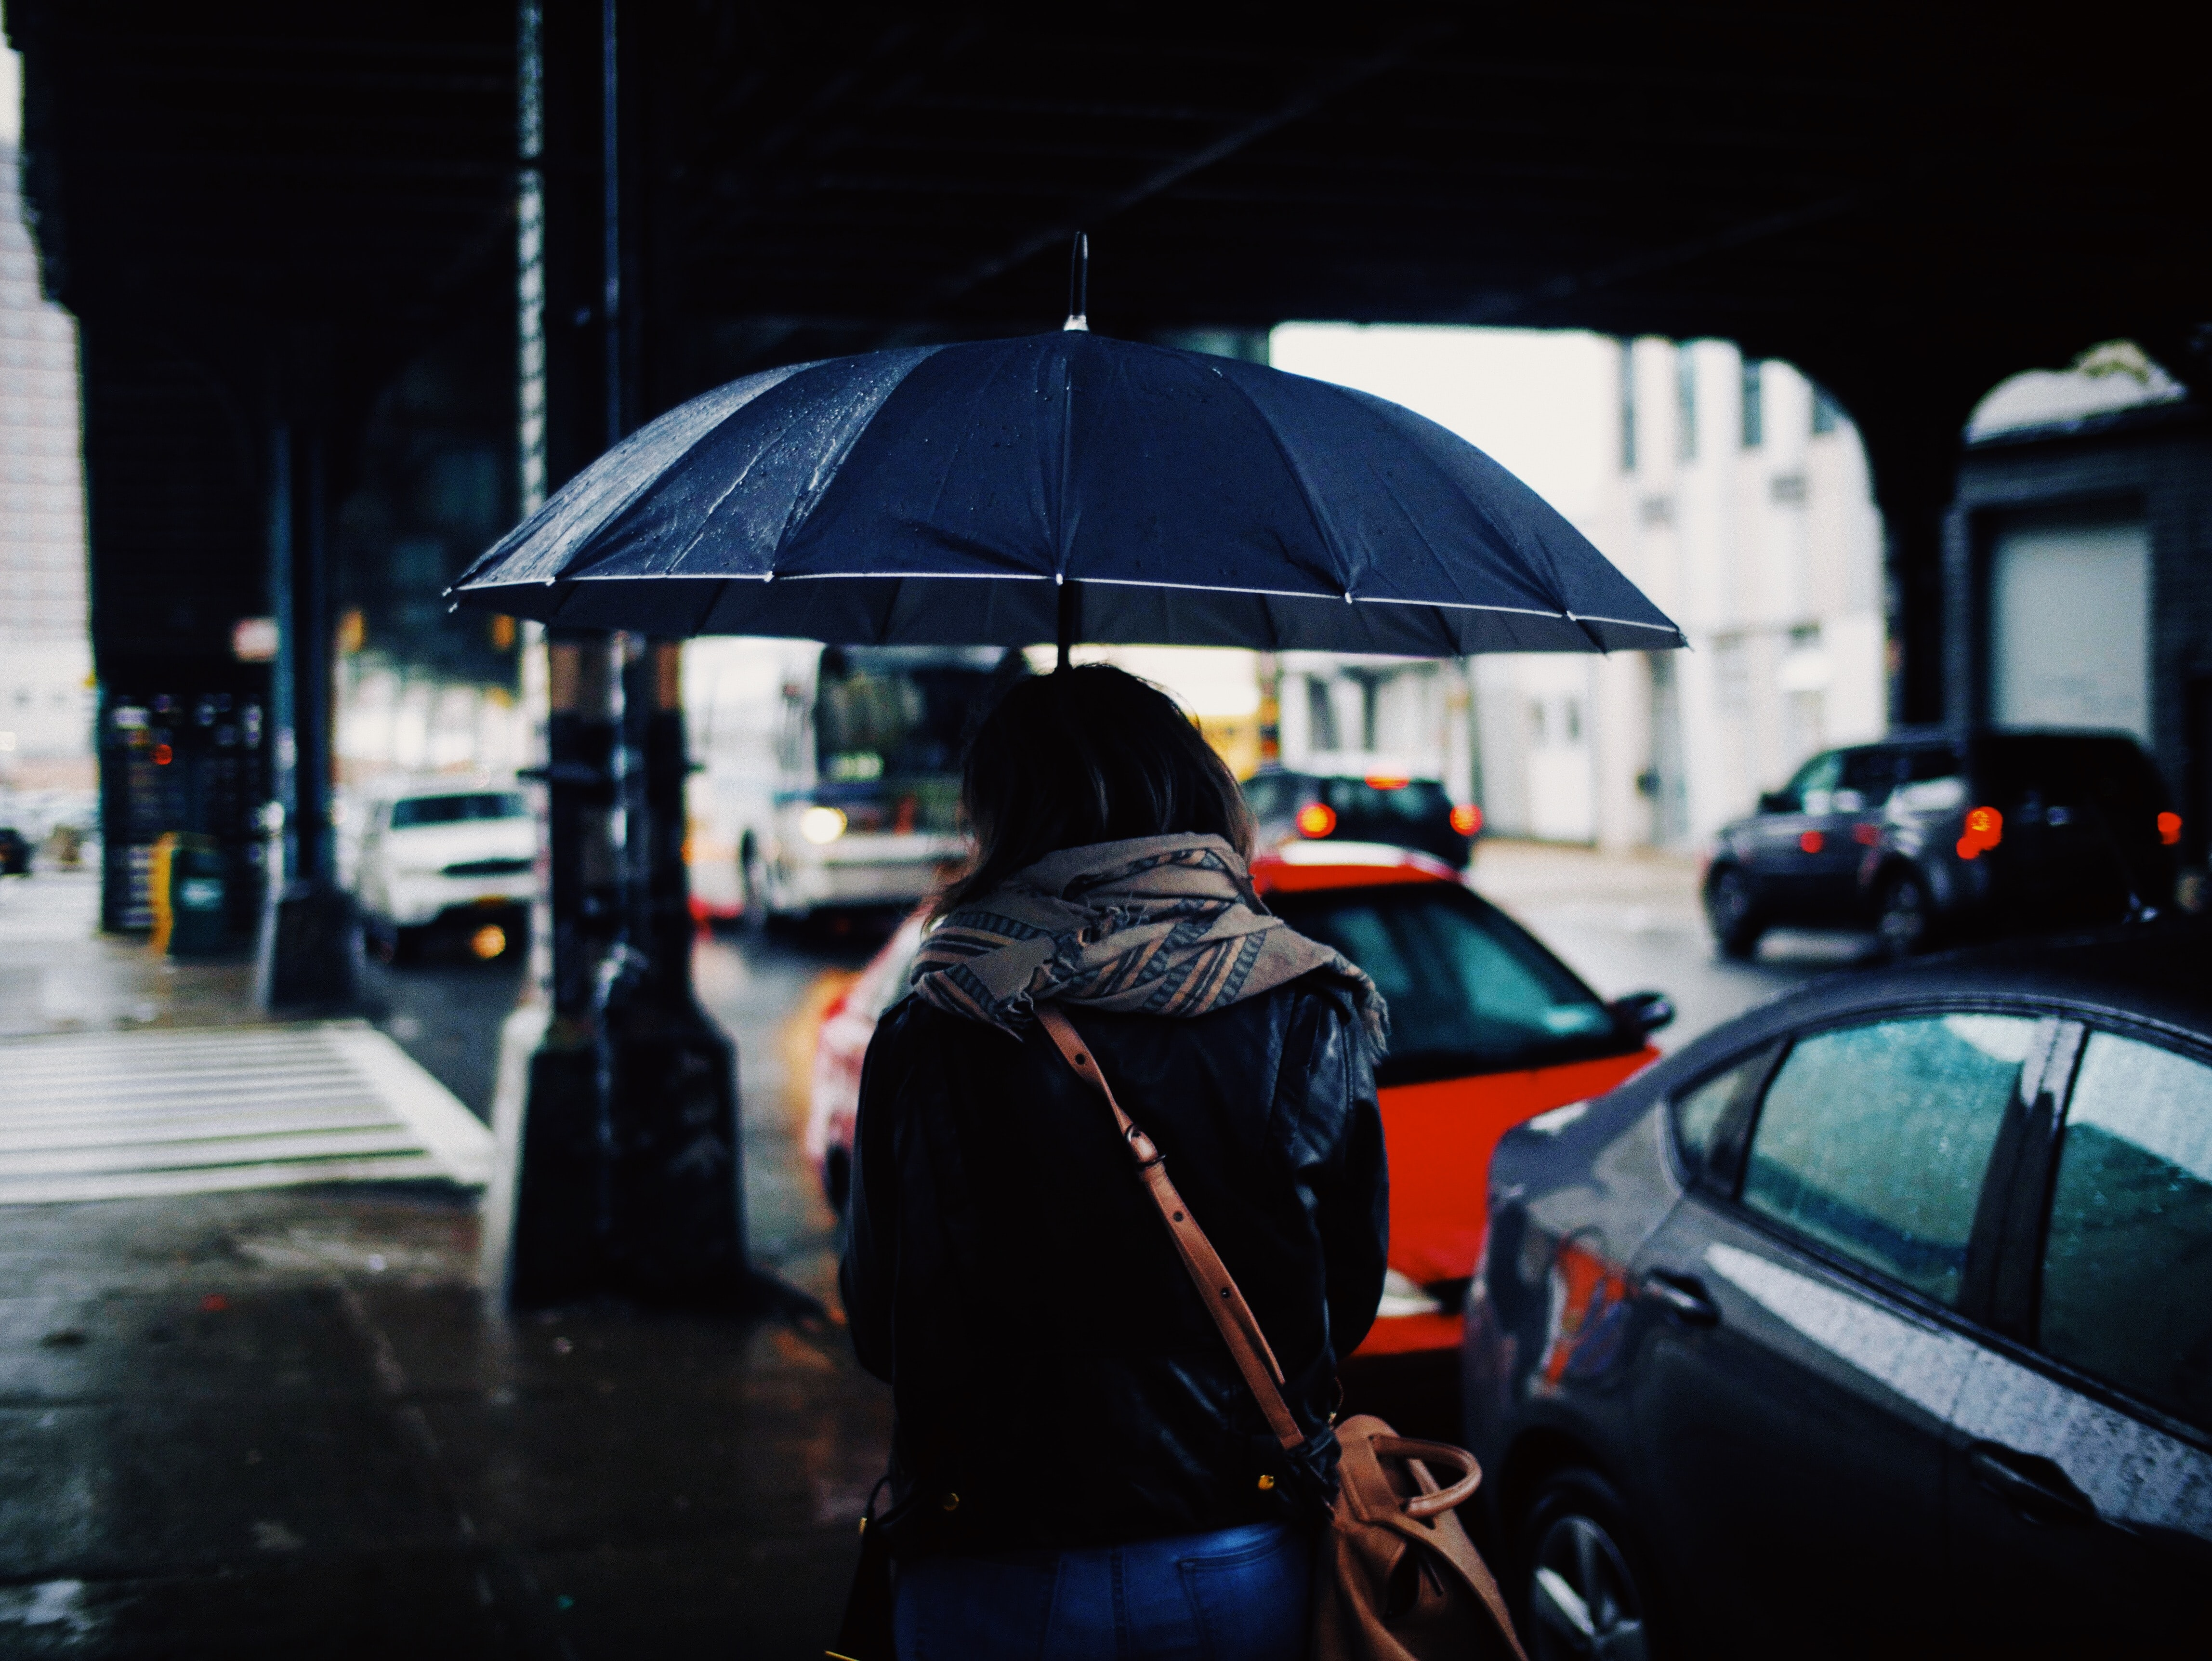 woman holding umbrella walking on street during daytime